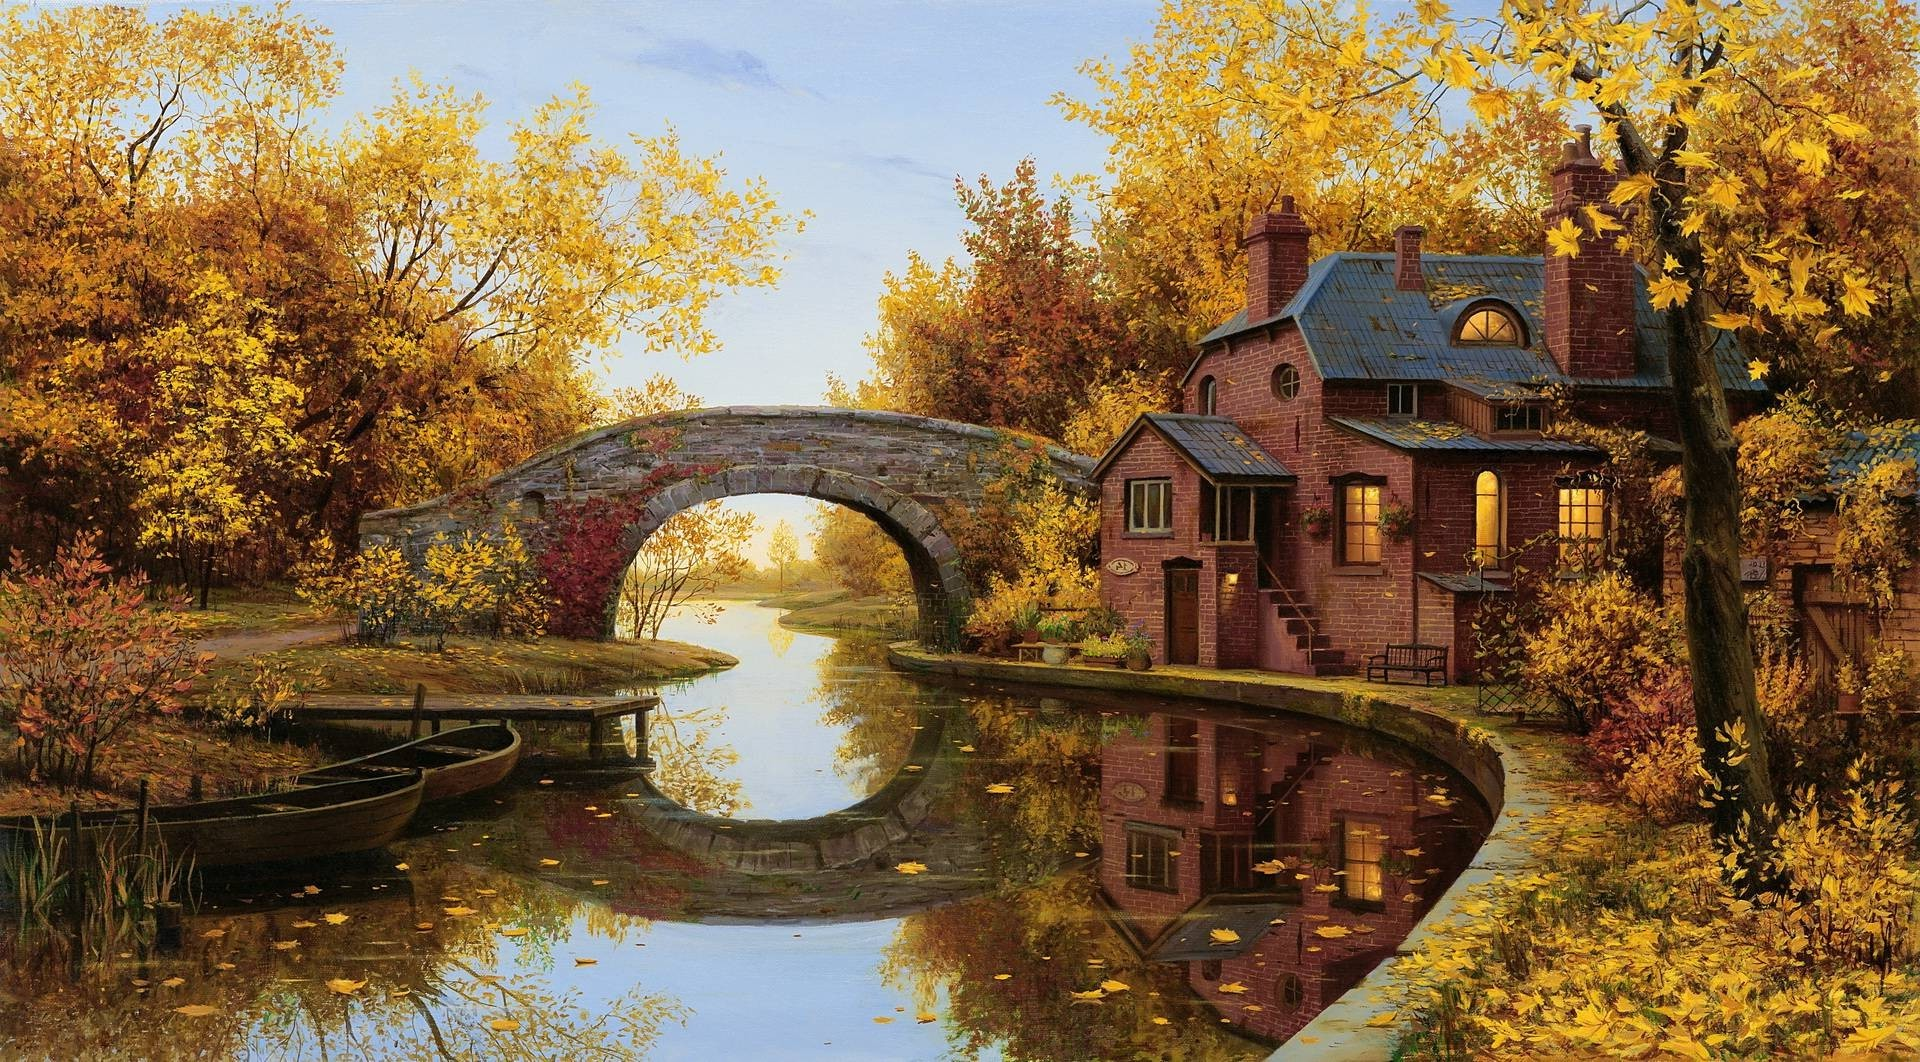 The Fall Movie Wallpaper Reflection Bridge Arch River House Trees Boat Fall